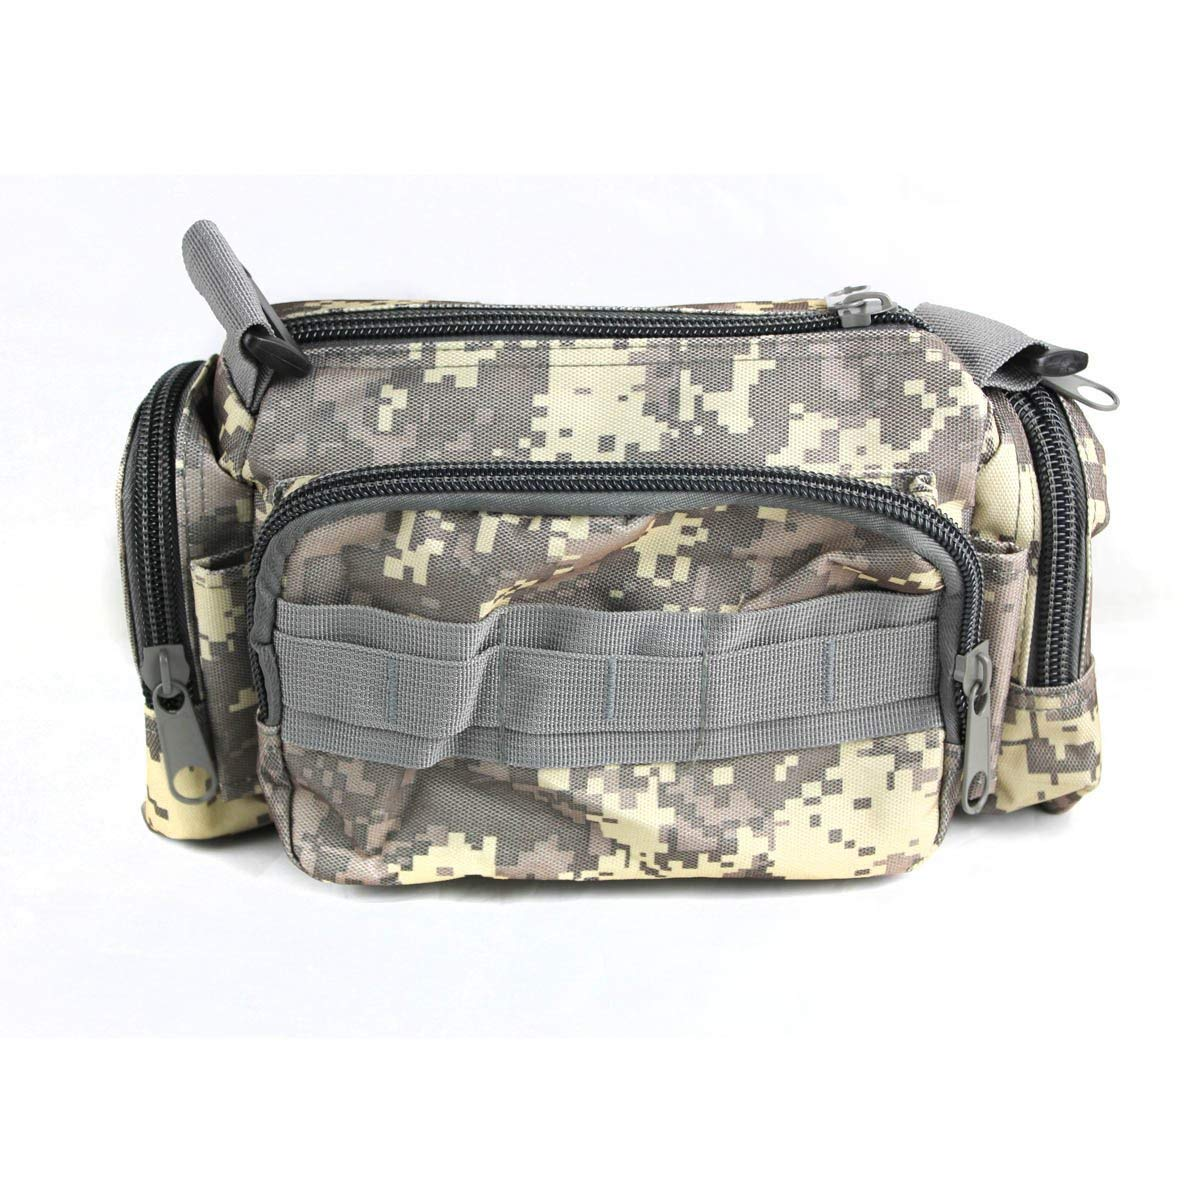 OLSUS Multifunctional Canvas Package Tactical Backpacks - ACU Camouflage